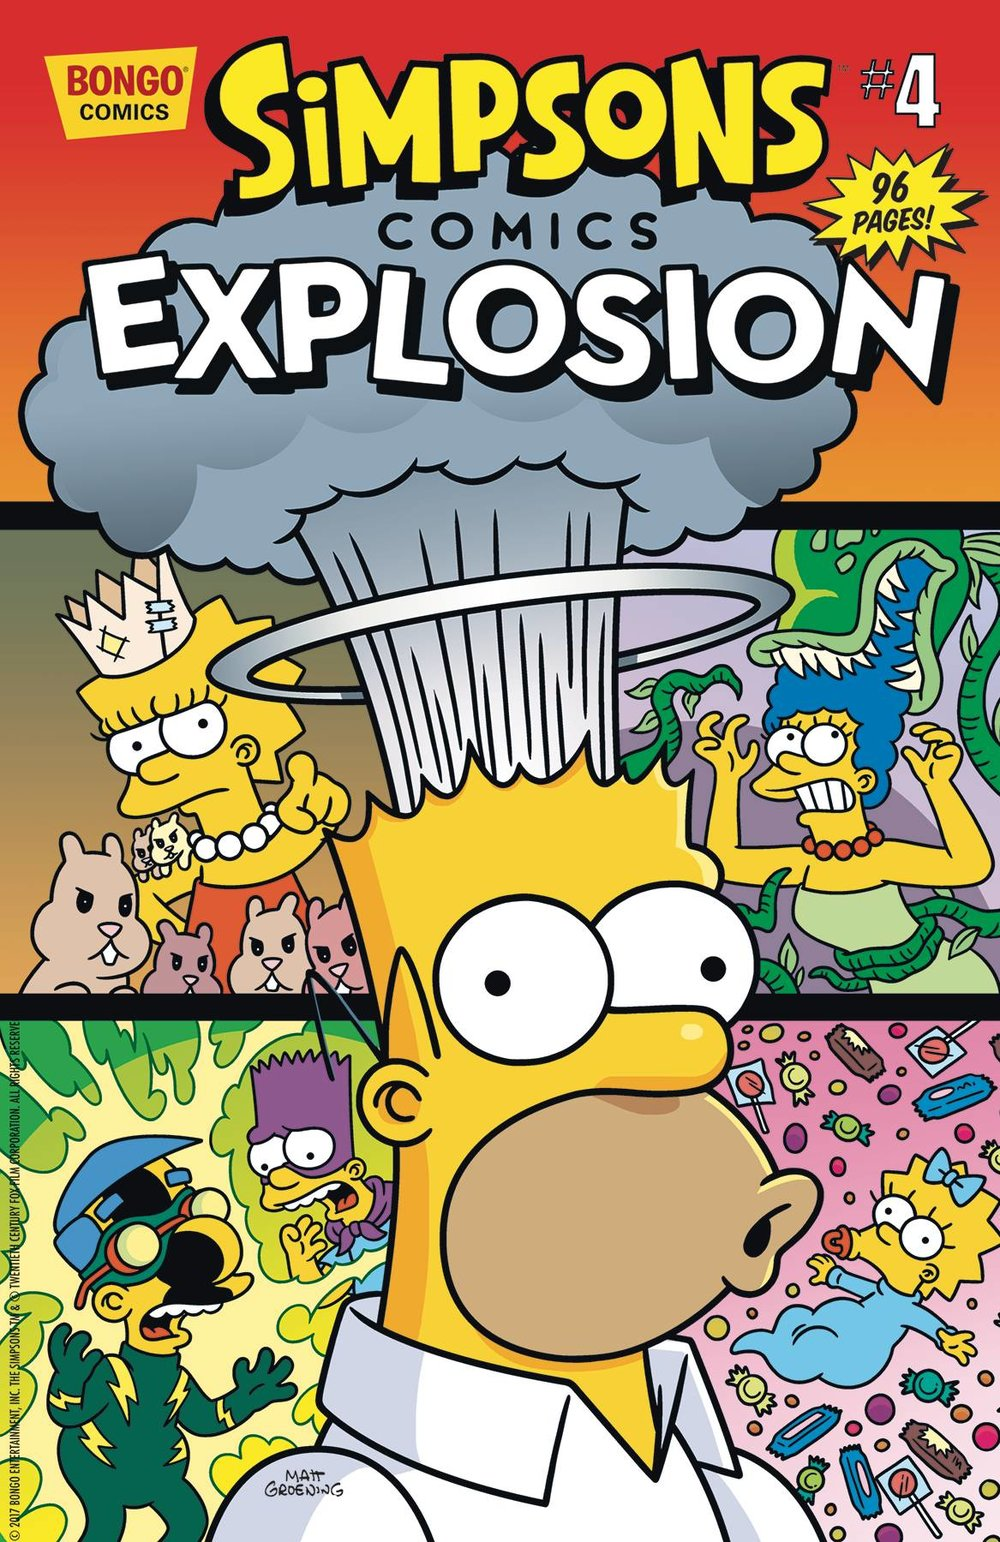 SIMPSONS COMICS EXPLOSION 4.jpg